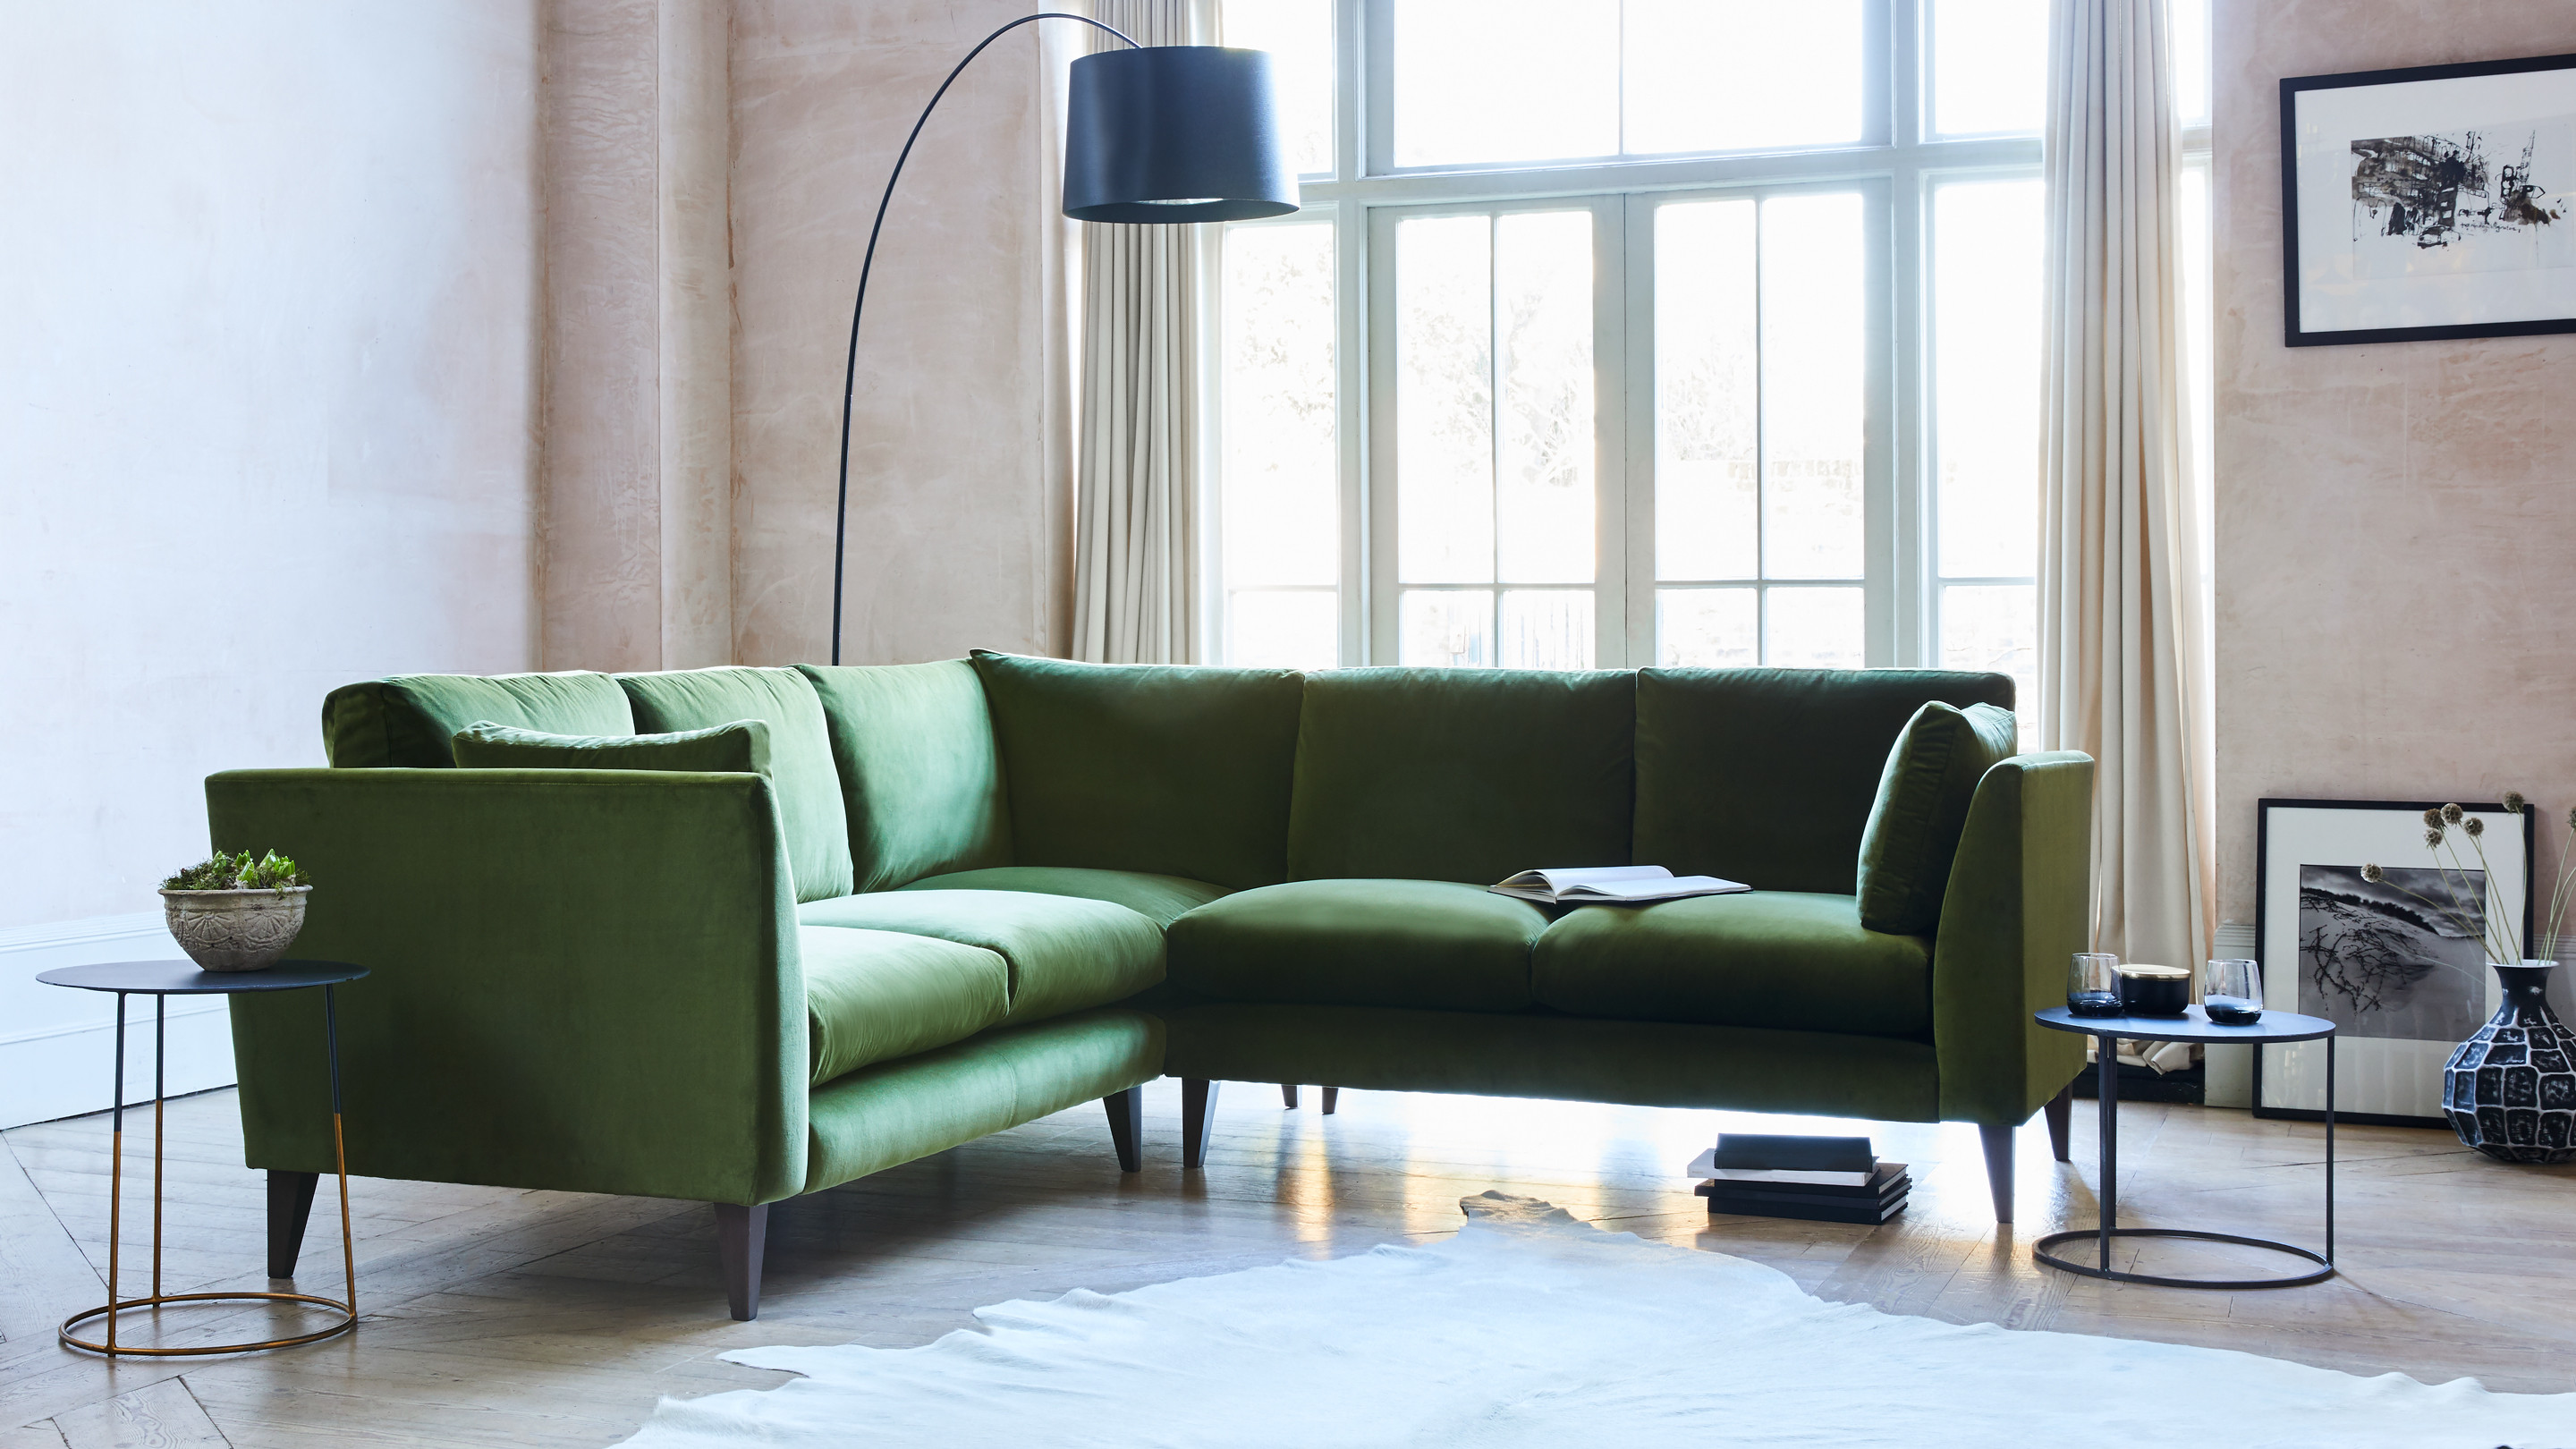 With long, lean lines, Philo is a stunning, mid-century, sink-all-the-way-in corner sofa with enough room for the whole family.